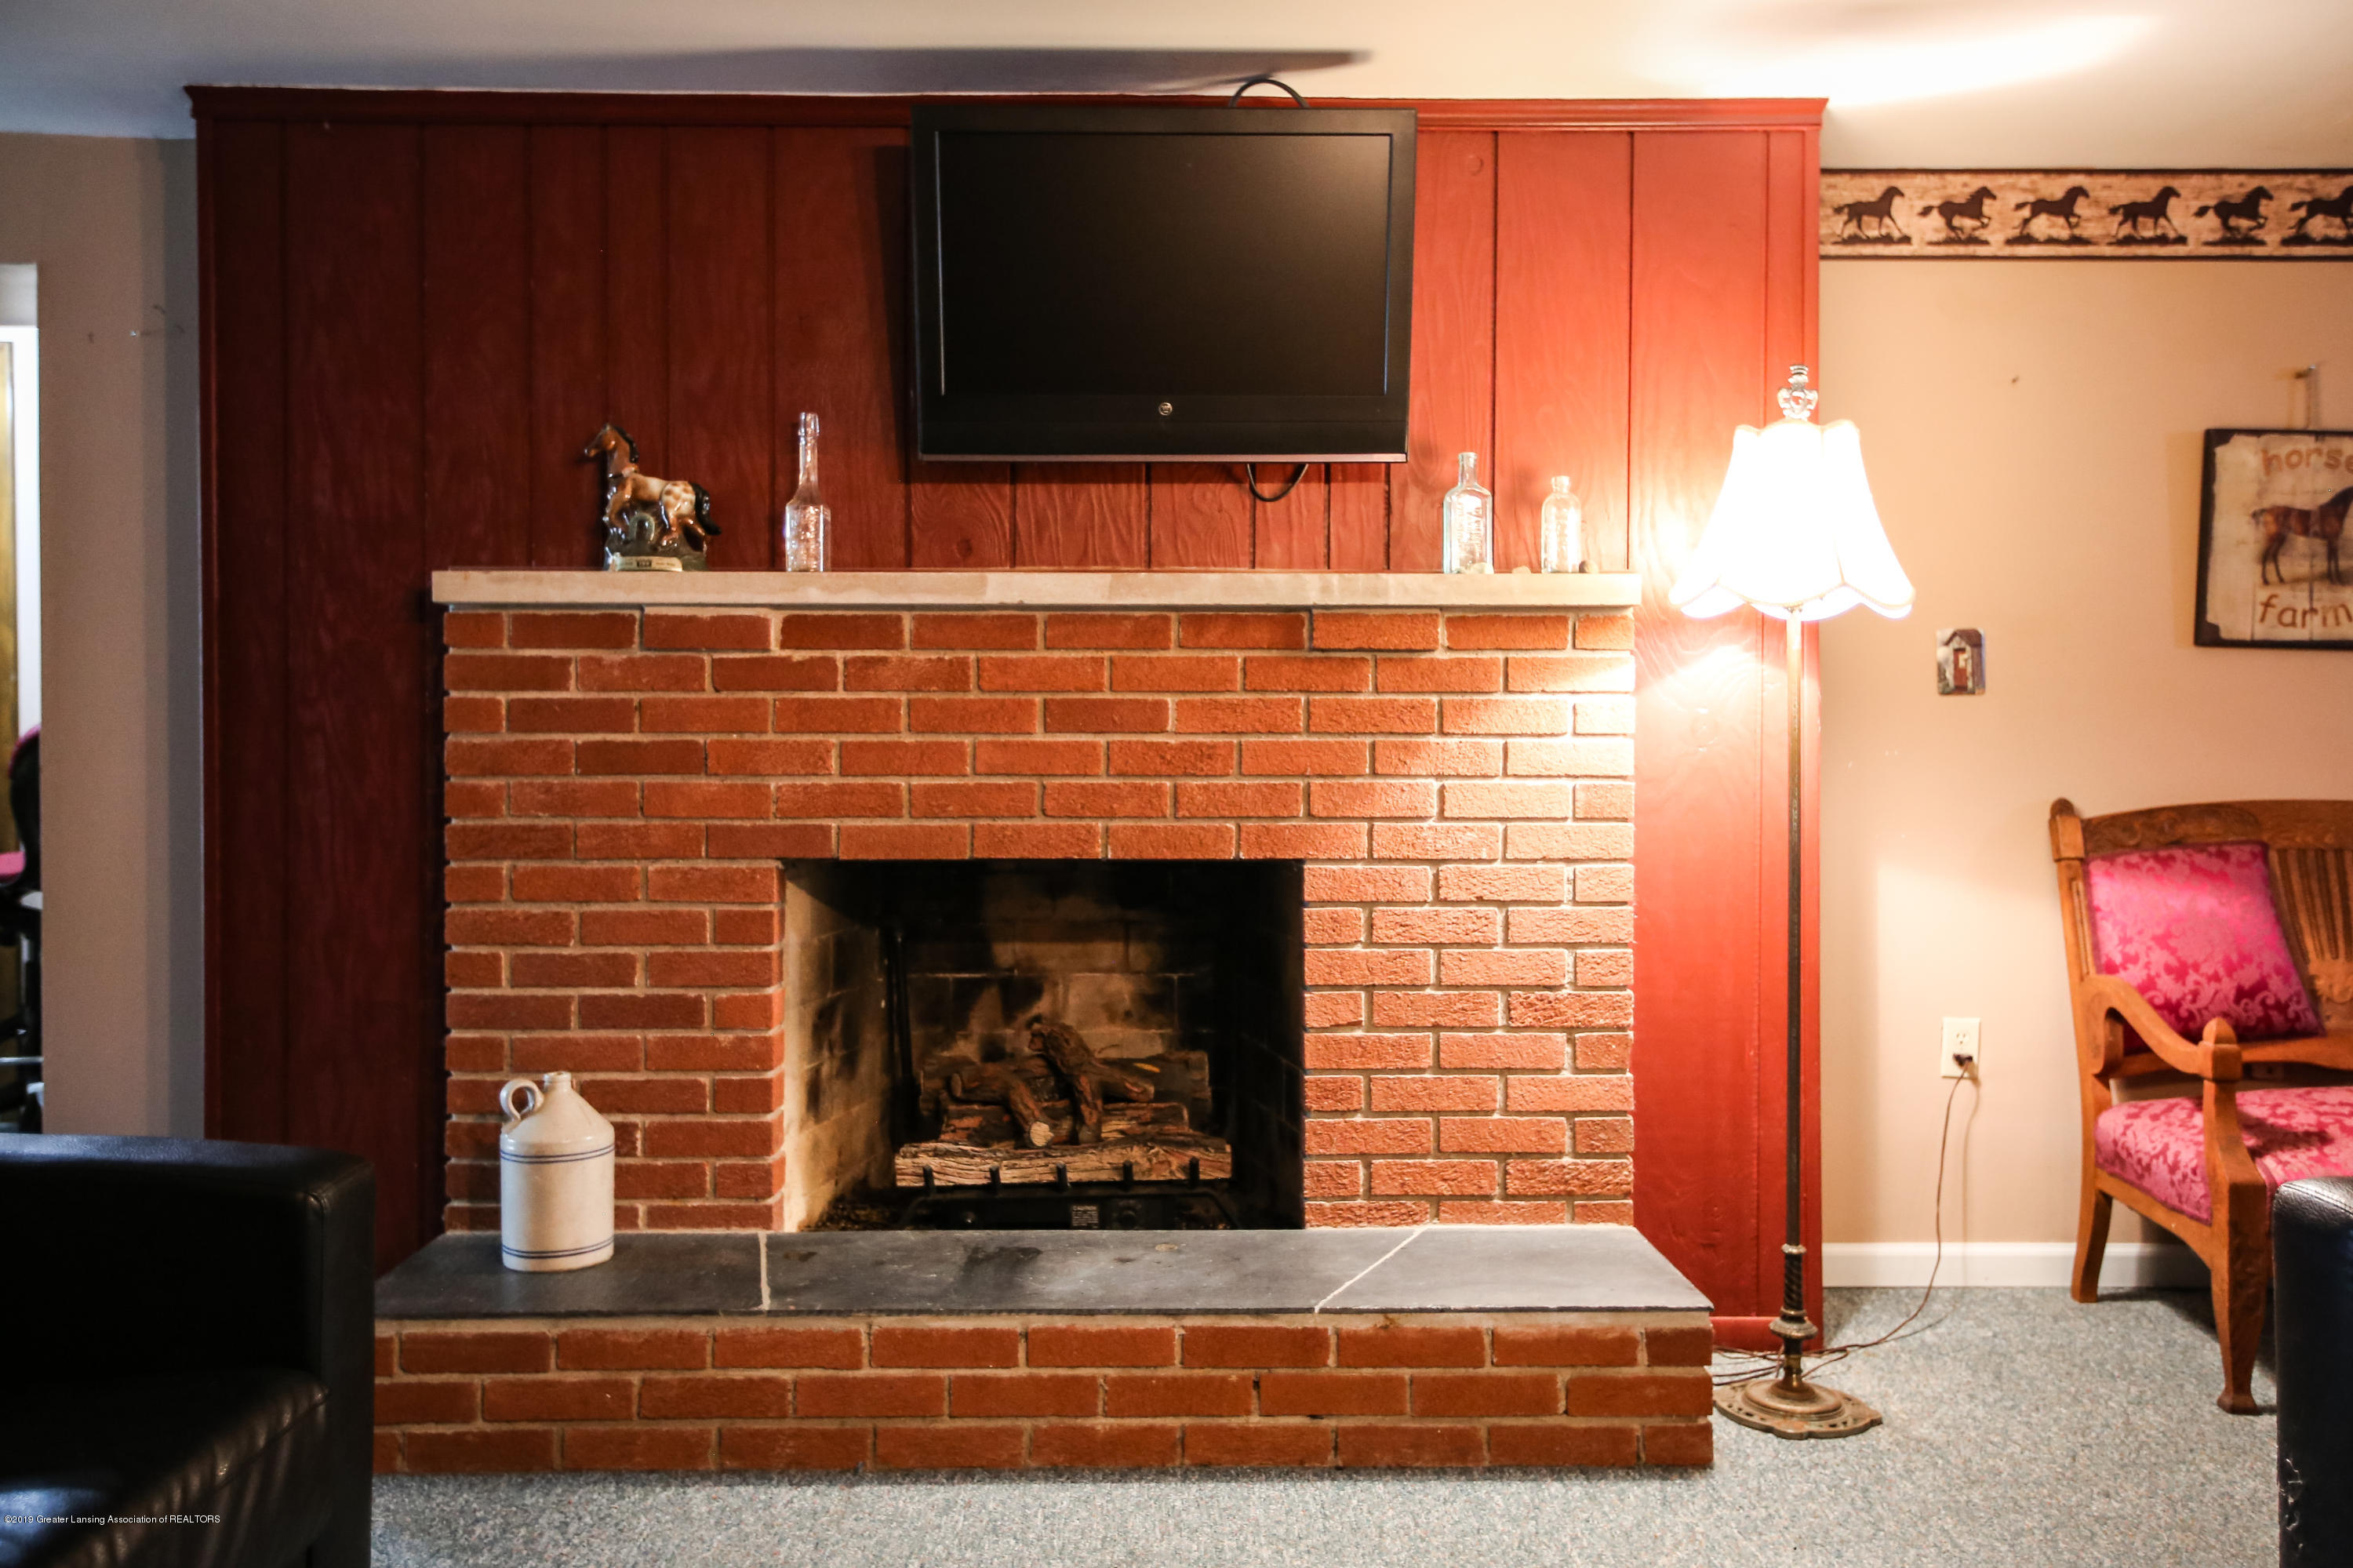 5953 W Cutler Rd - Basement Great Room Fireplace - 40